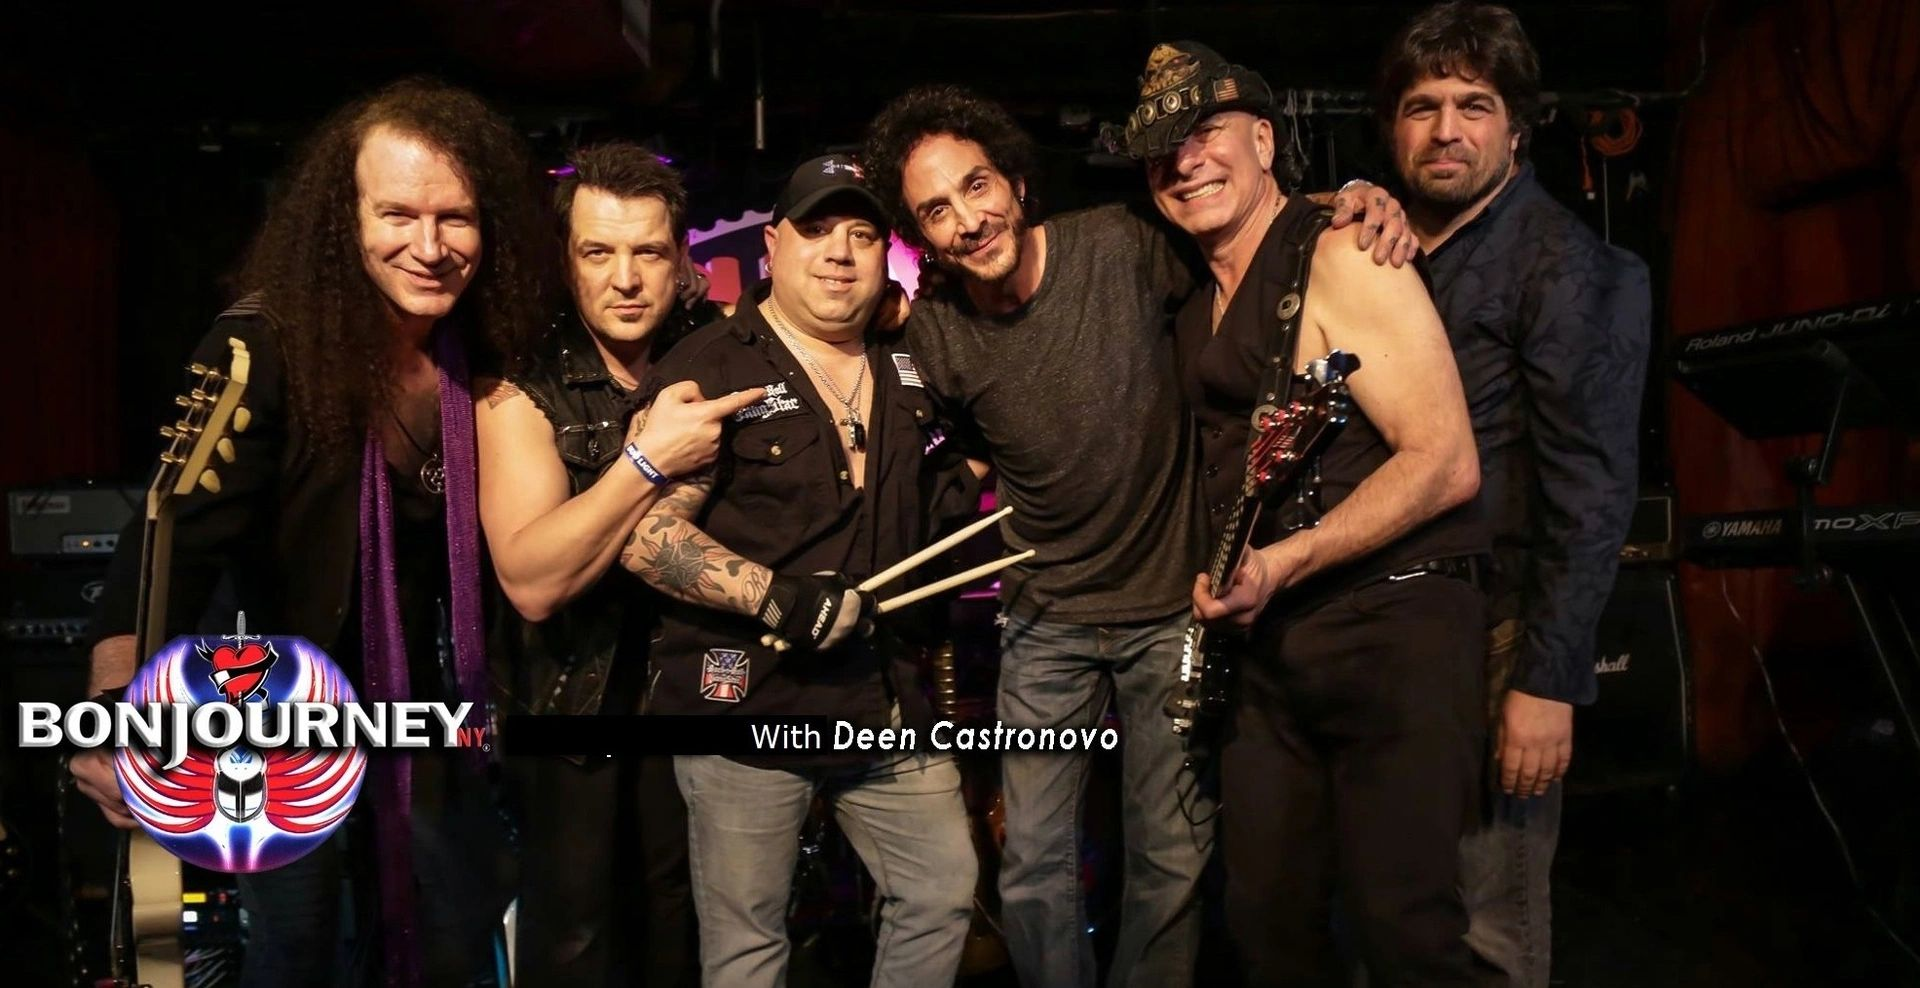 BonJourneyNY is a New York based Tribute Band paying tribute to Rock Icons, Bon Jovi and Journey.